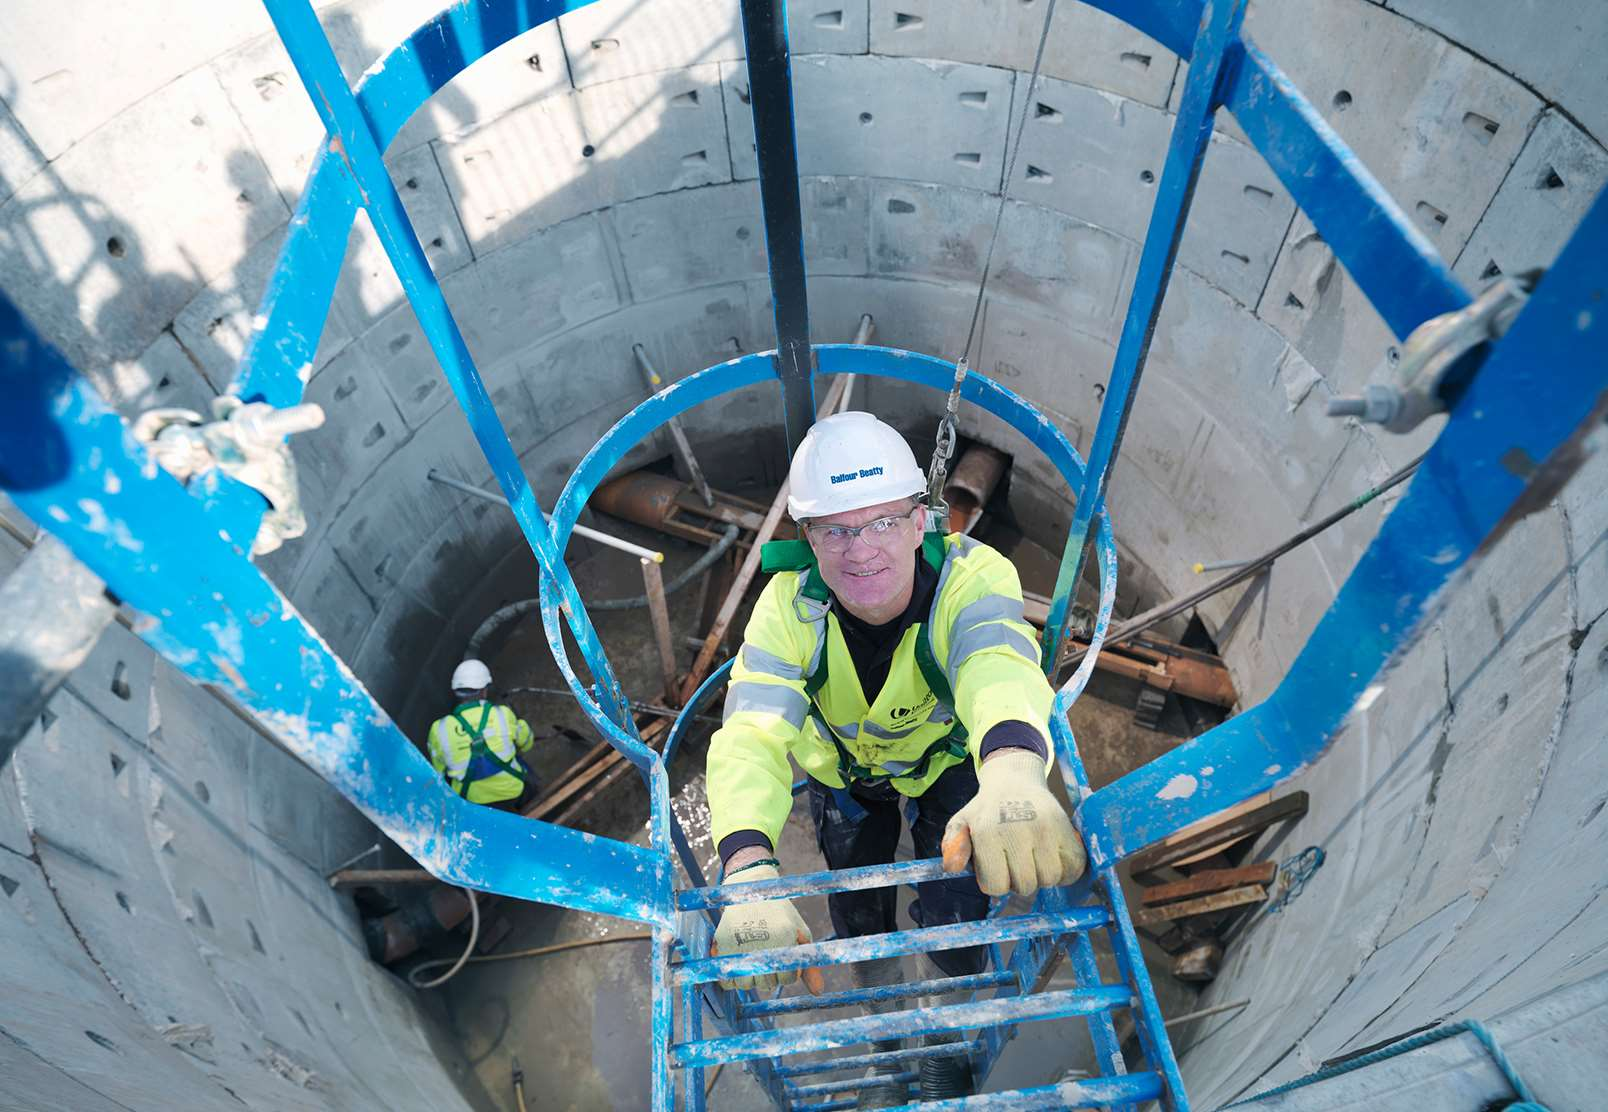 Balfour Beatty's vision for a sustainable Water industry